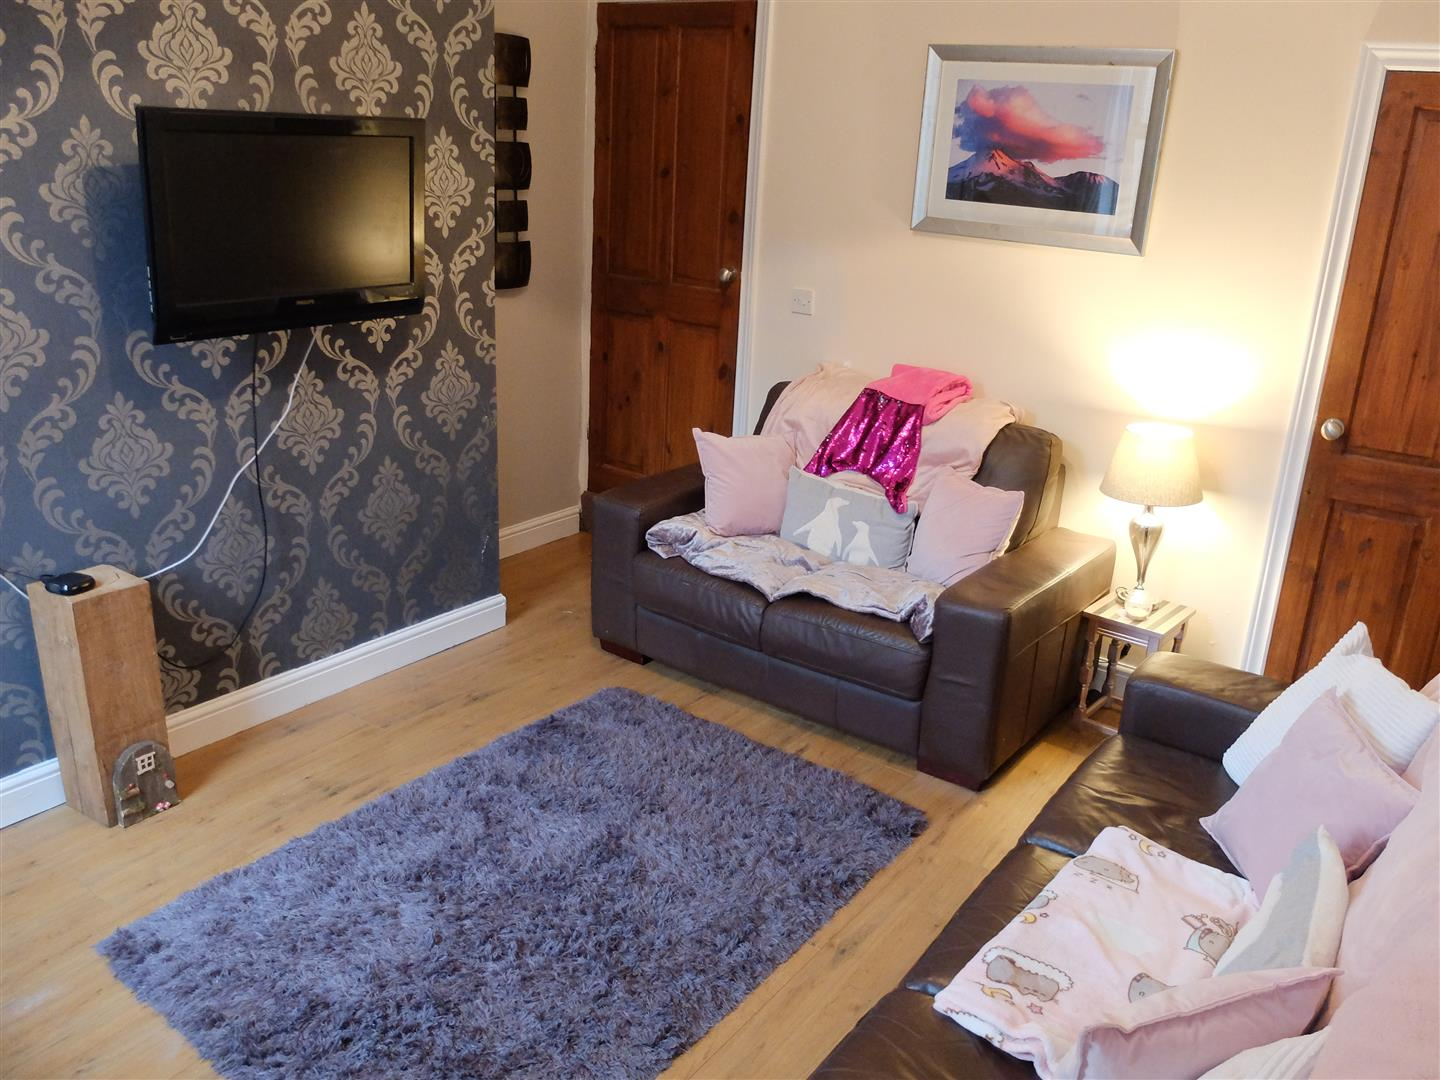 2 Bedrooms House - Terraced For Sale 63 Sybil Street Carlisle